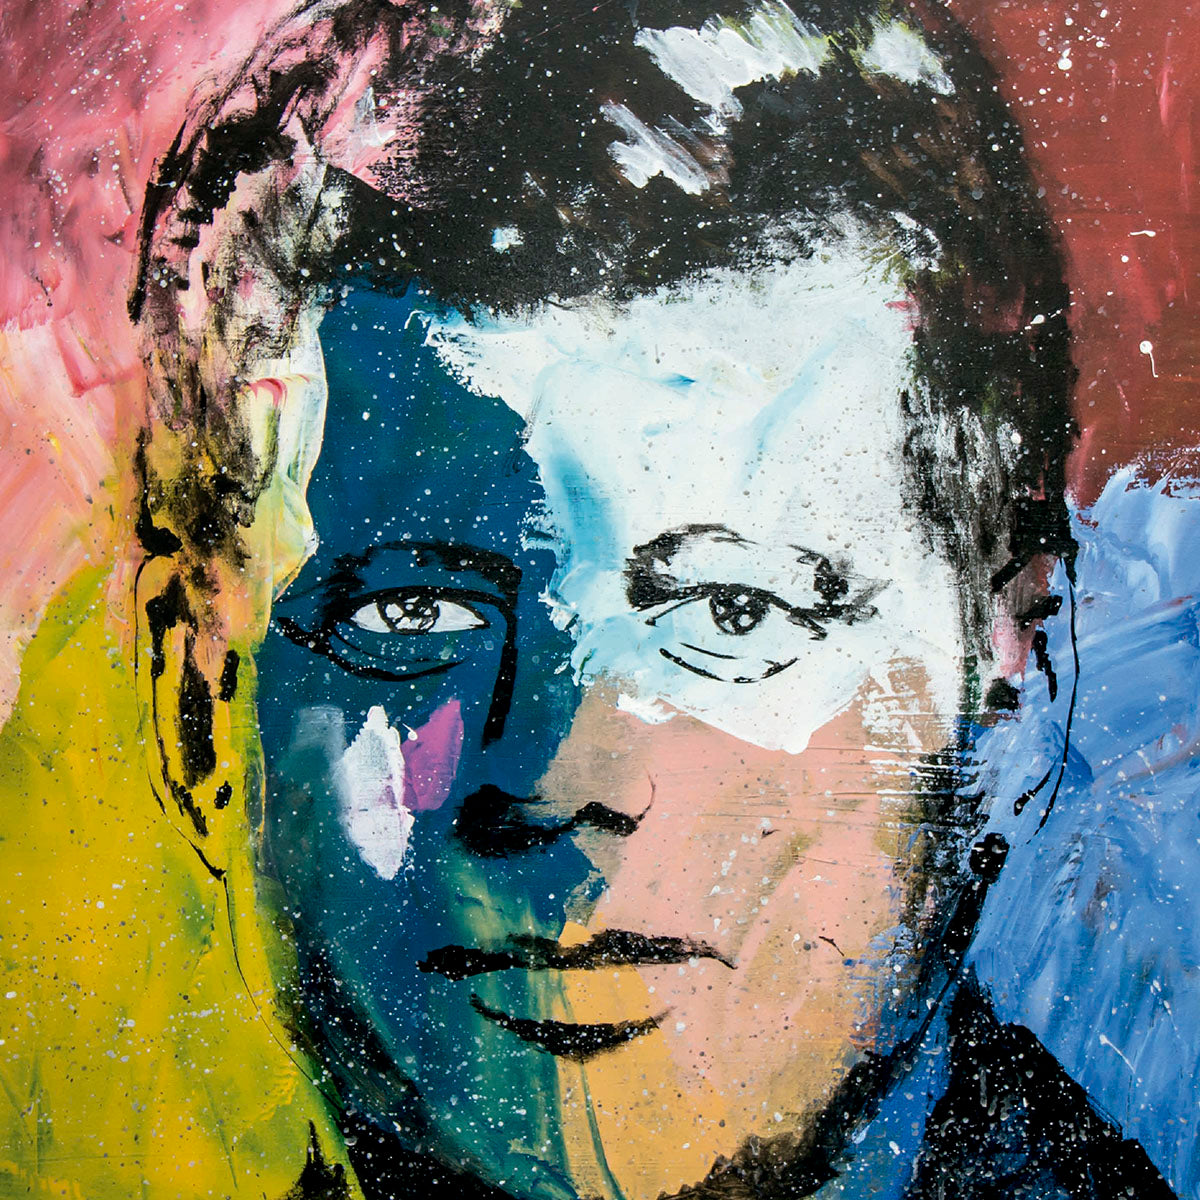 SOLD - Prints Available - John F. Kennedy Pop Art Painting - 90x70cm